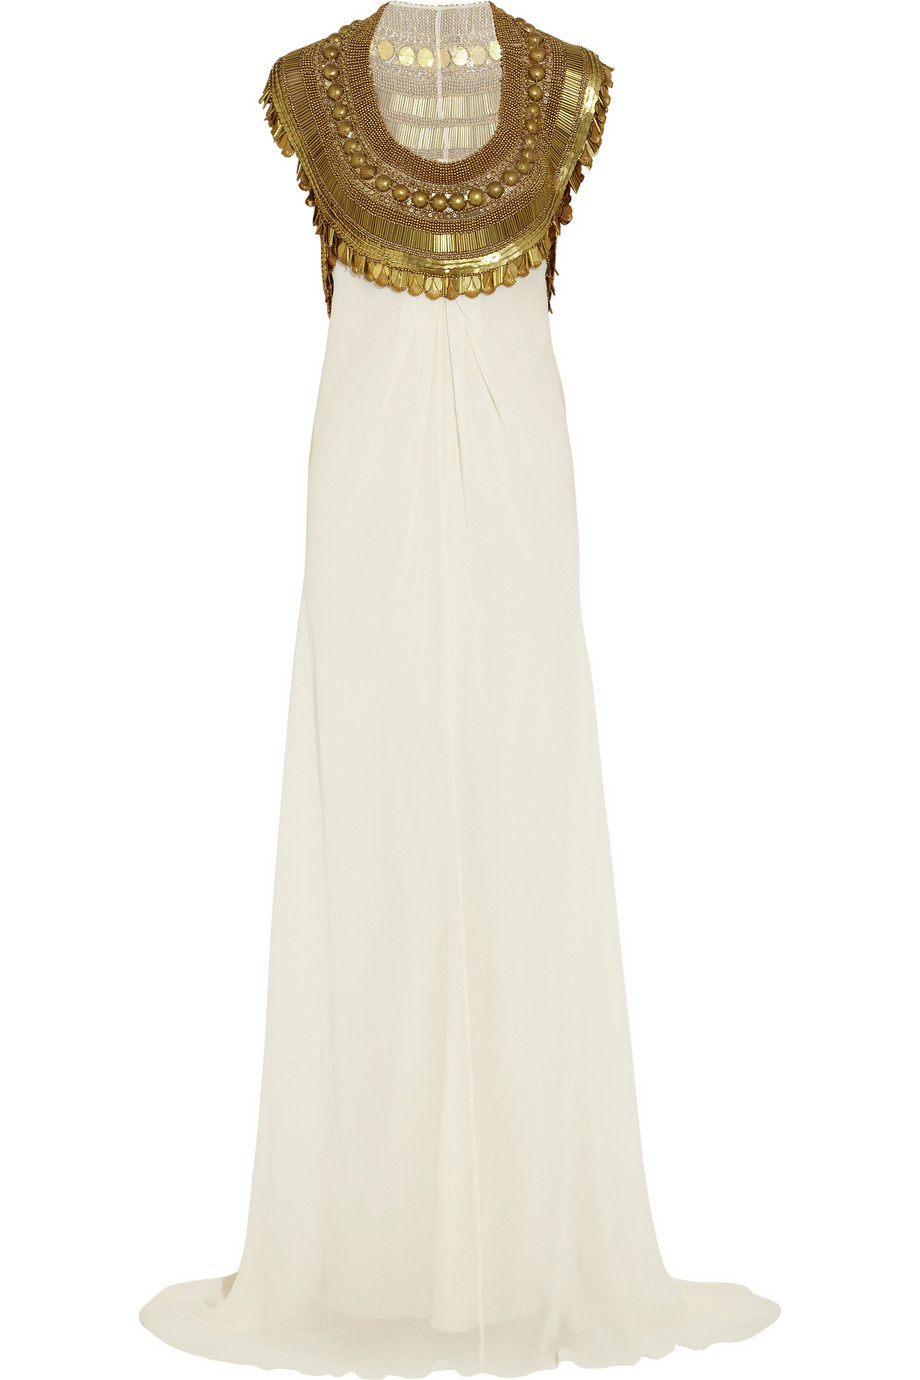 Temperley London Wedding Dress